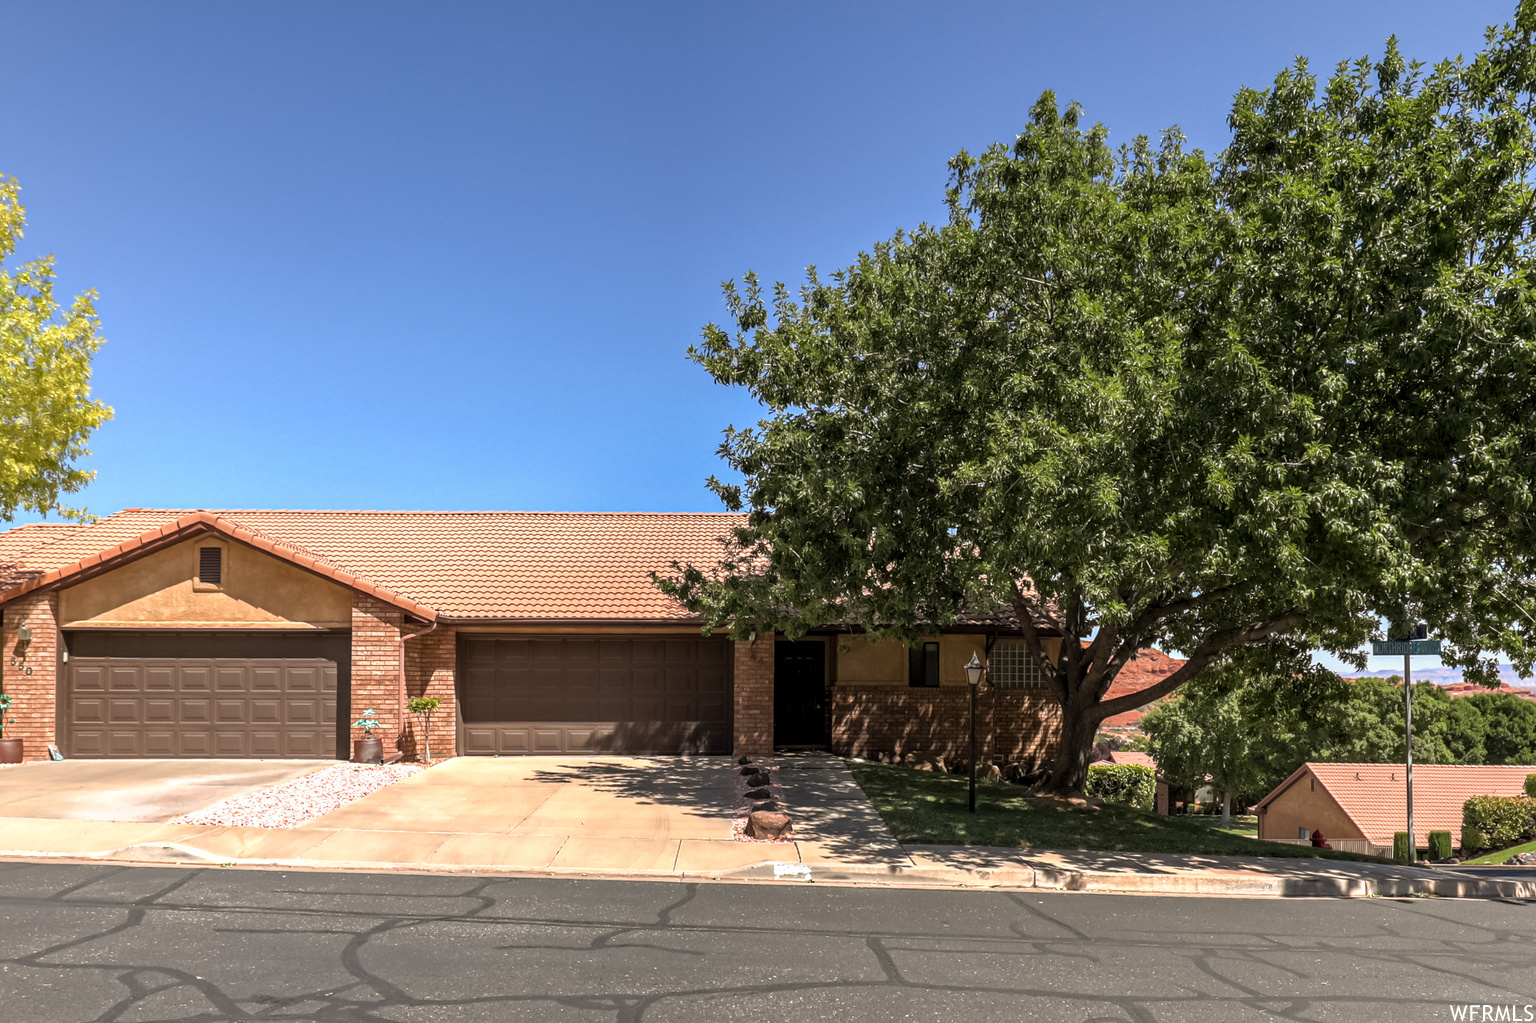 544 N NORTHRIDGE AVE, St. George UT 84770